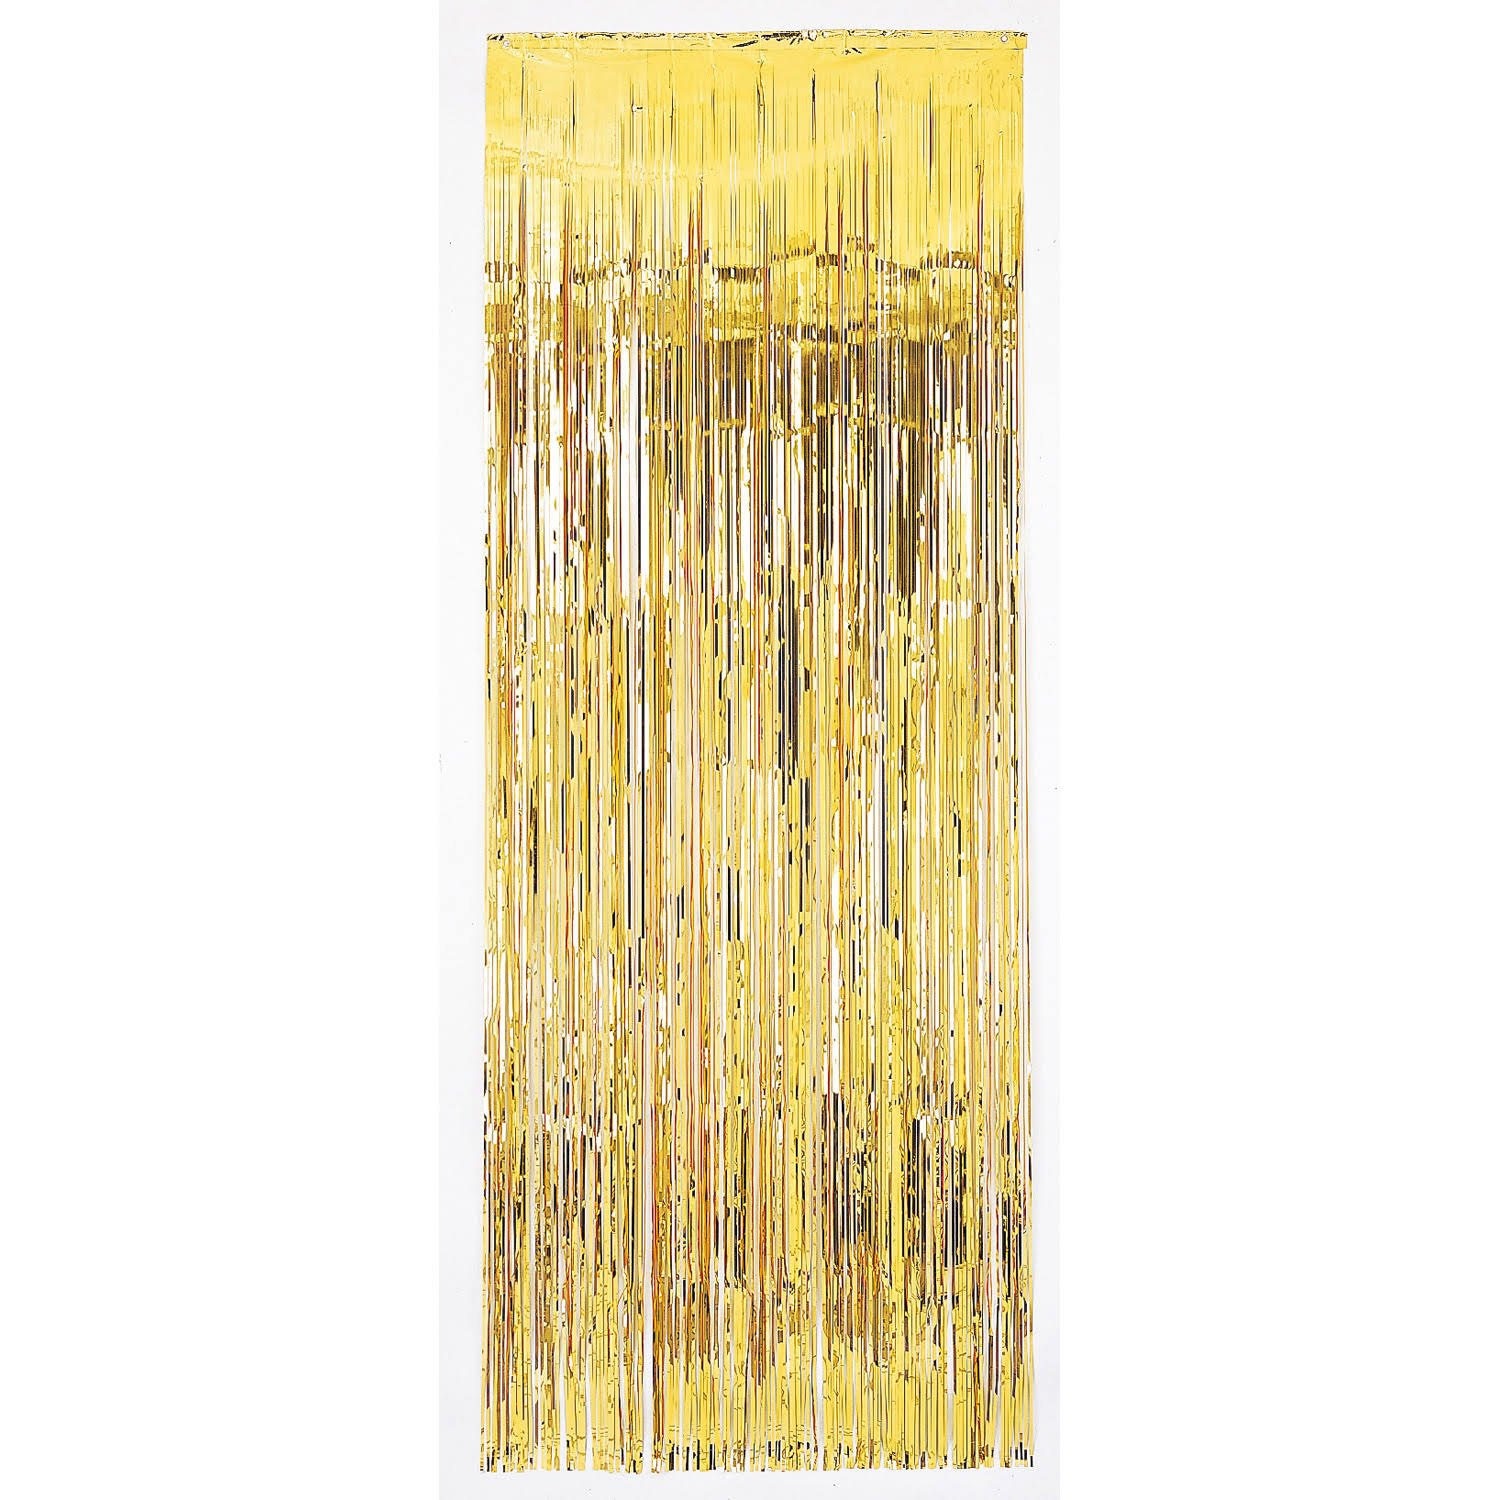 Amscan Door Curtain - Metallic Gold, 8ft x 3ft